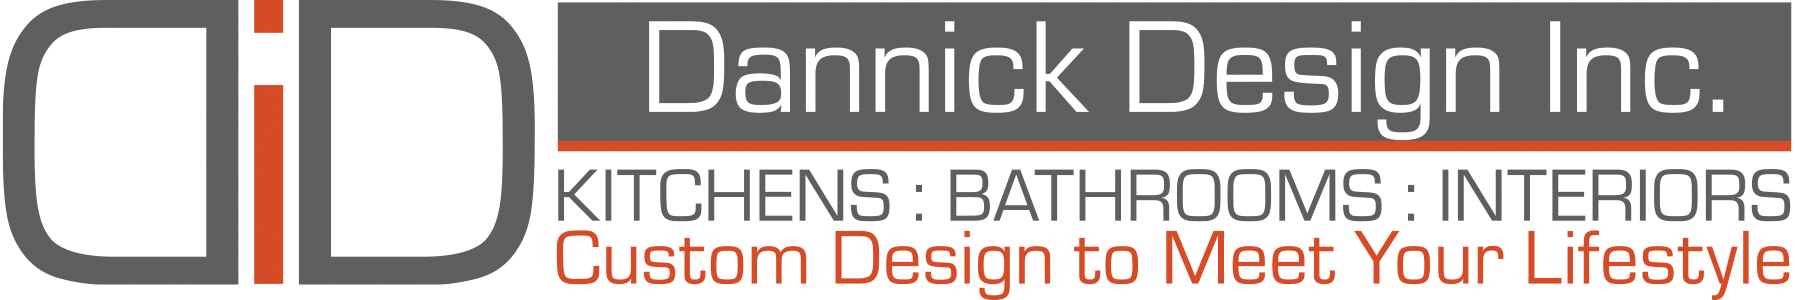 Dannick Design Inc.